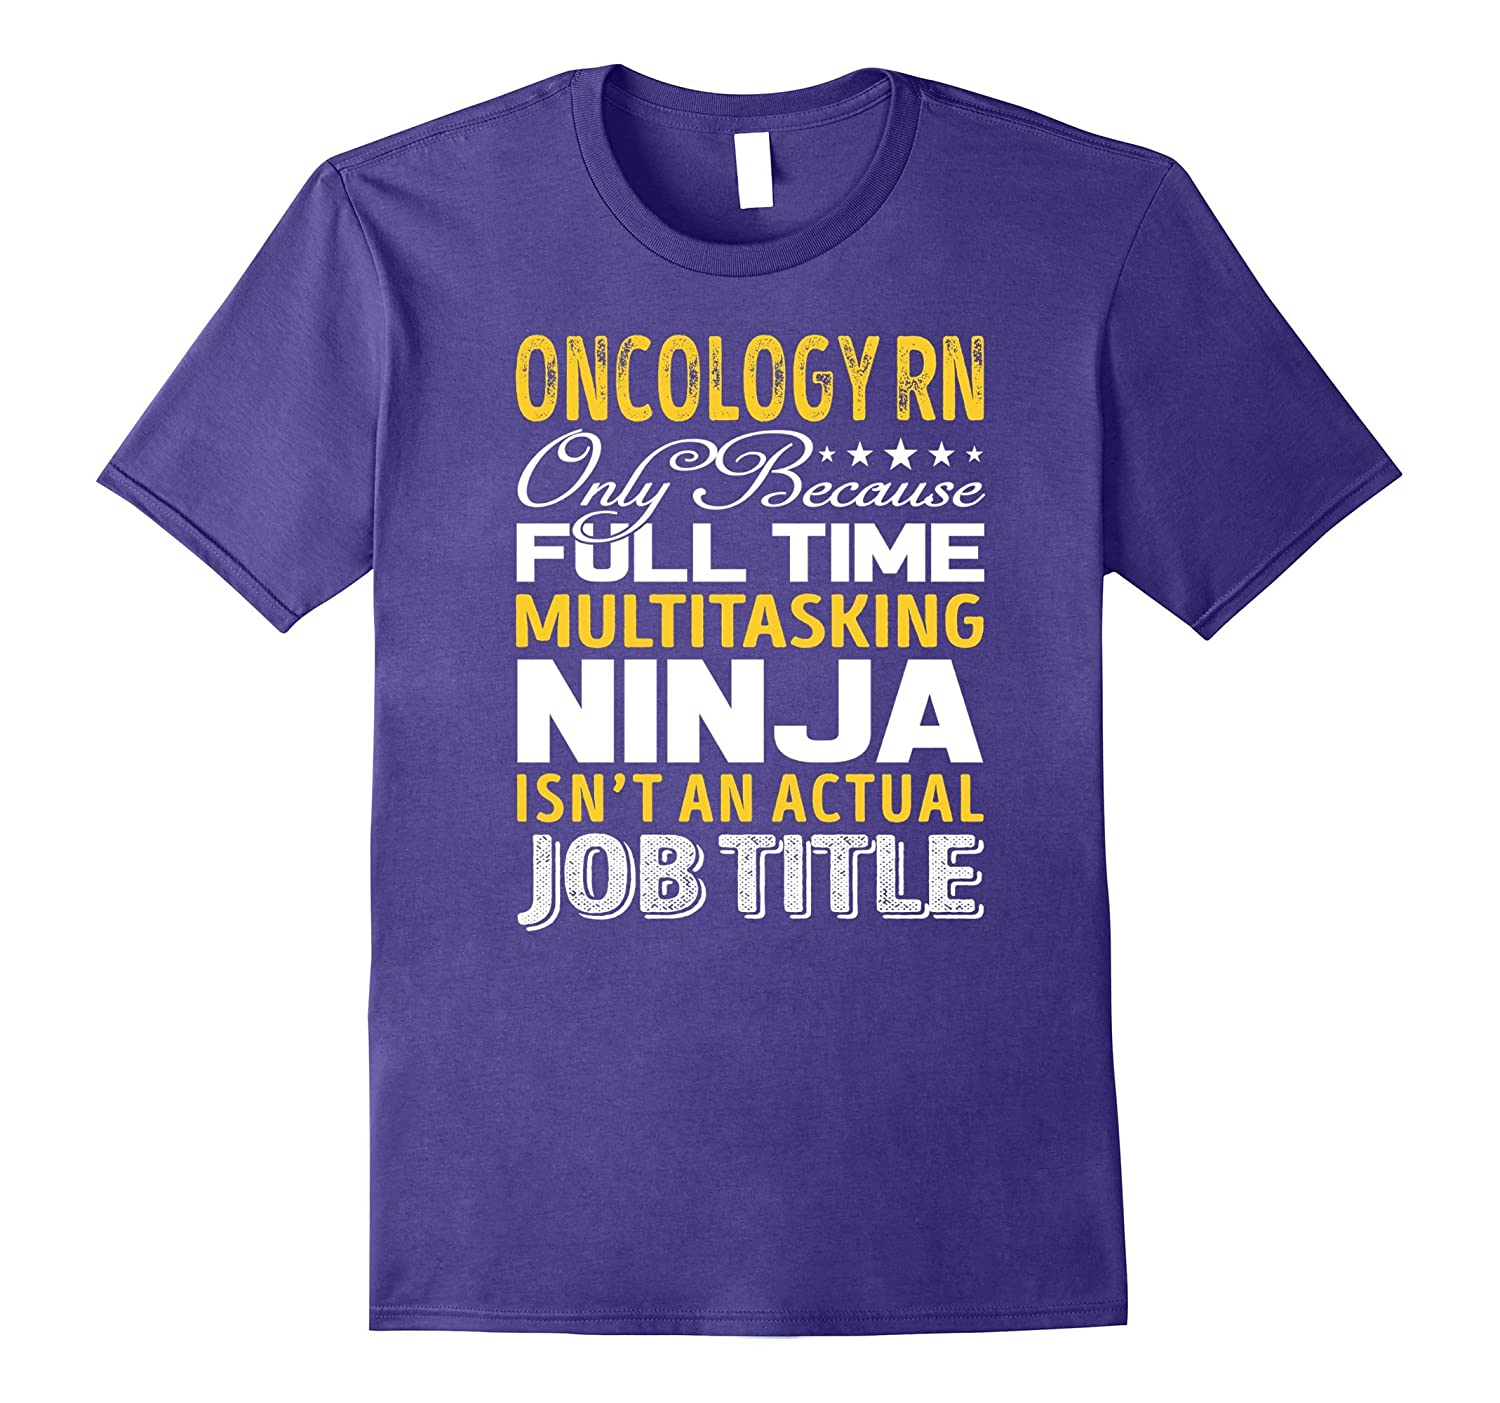 Oncology RN Is Not An Actual Job Title TShirt-TJ